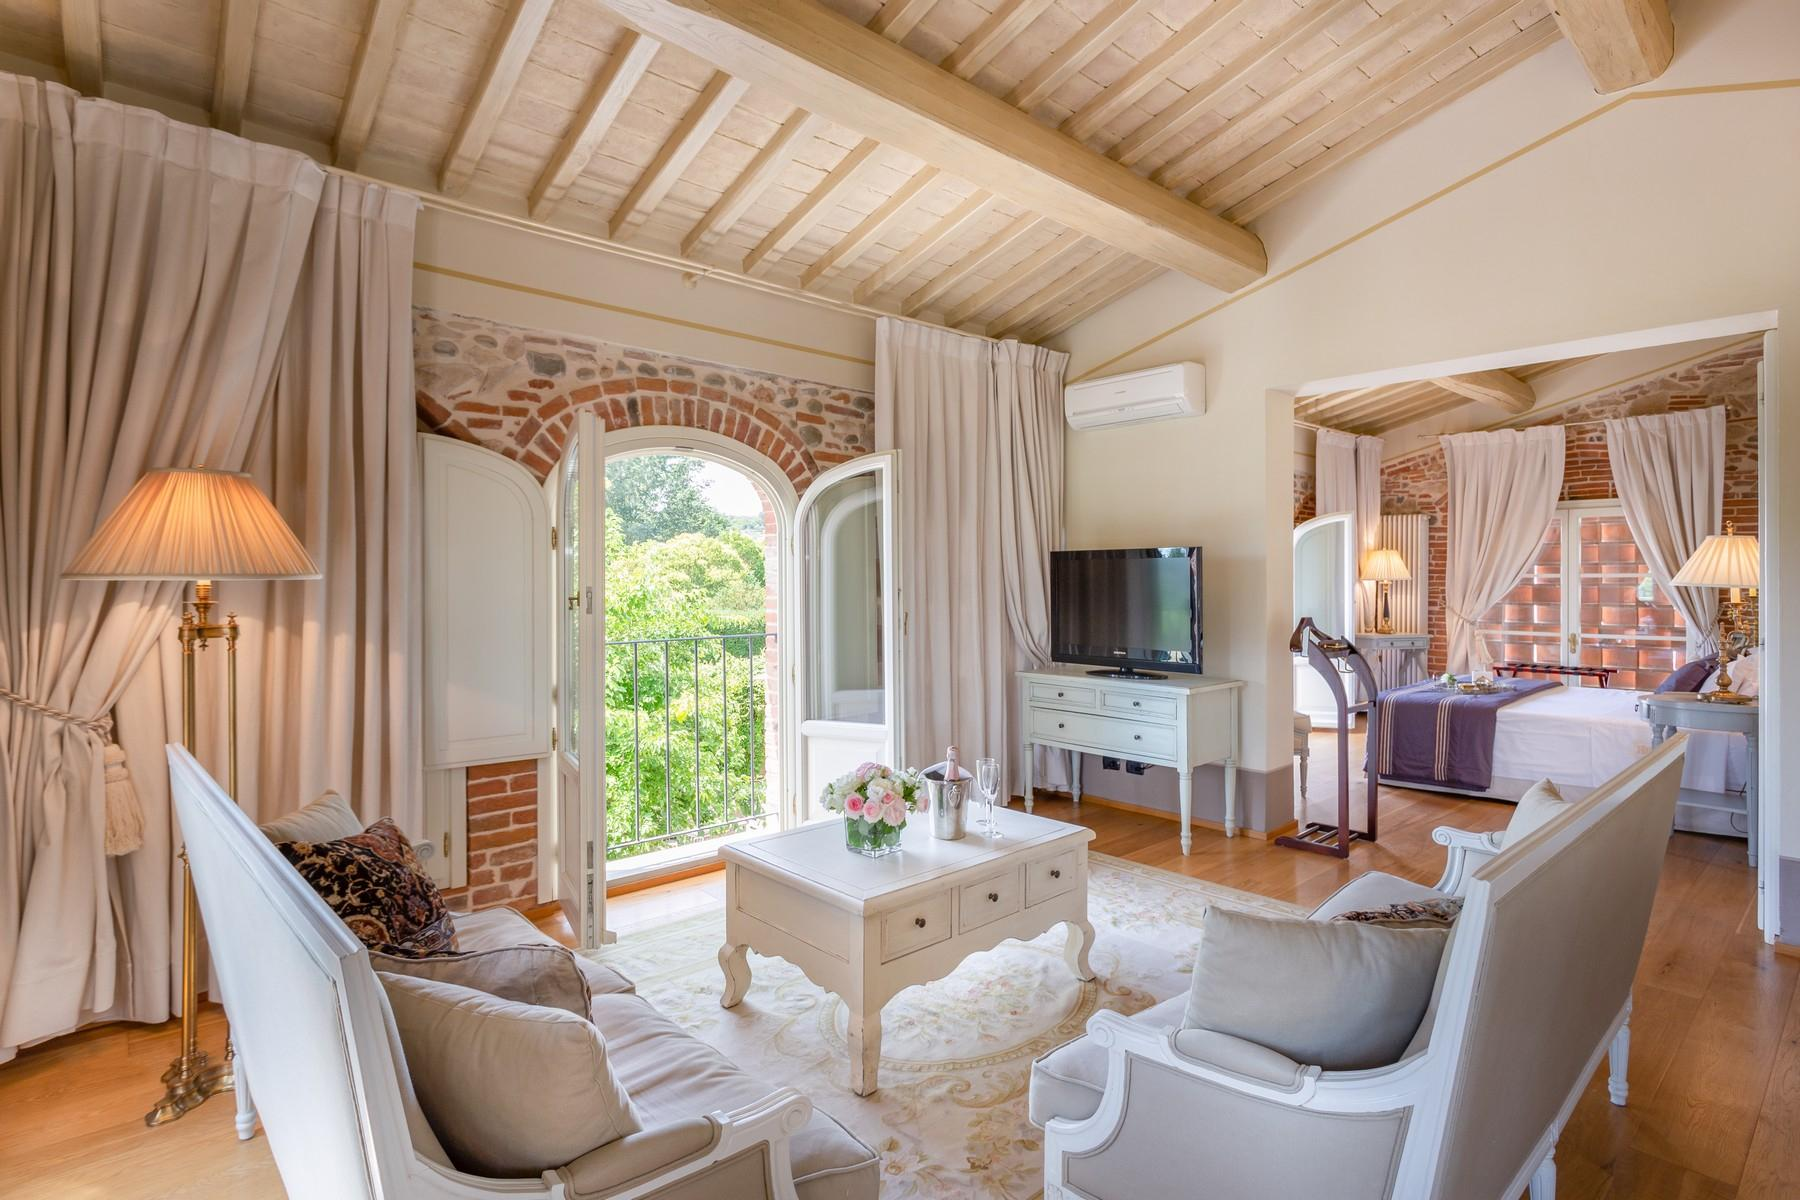 Charming luxury villa on the Tuscan hills - 20